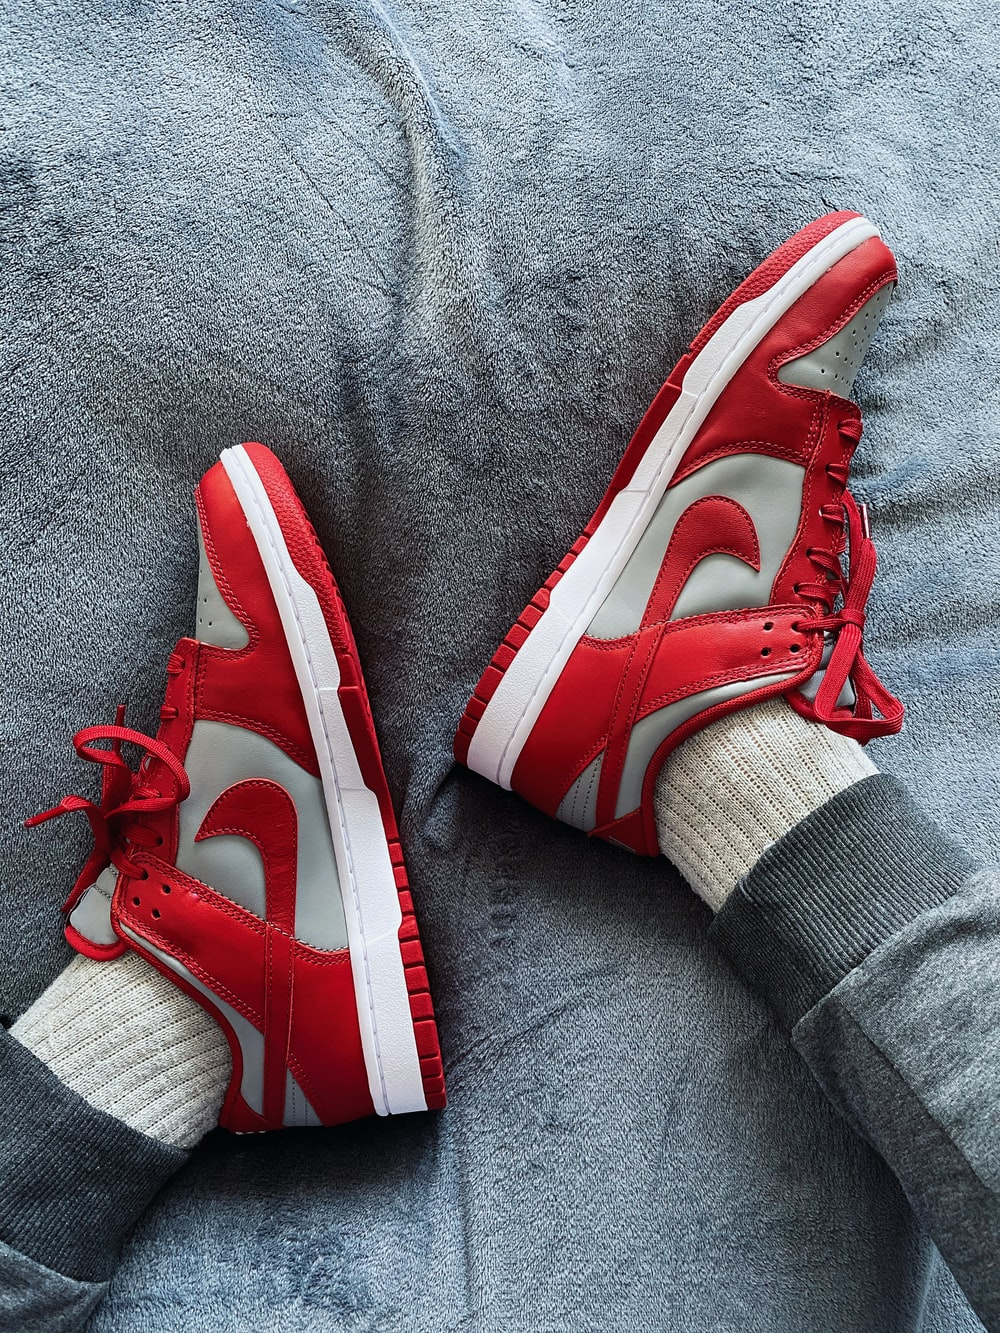 person wearing red and white nike sneakers